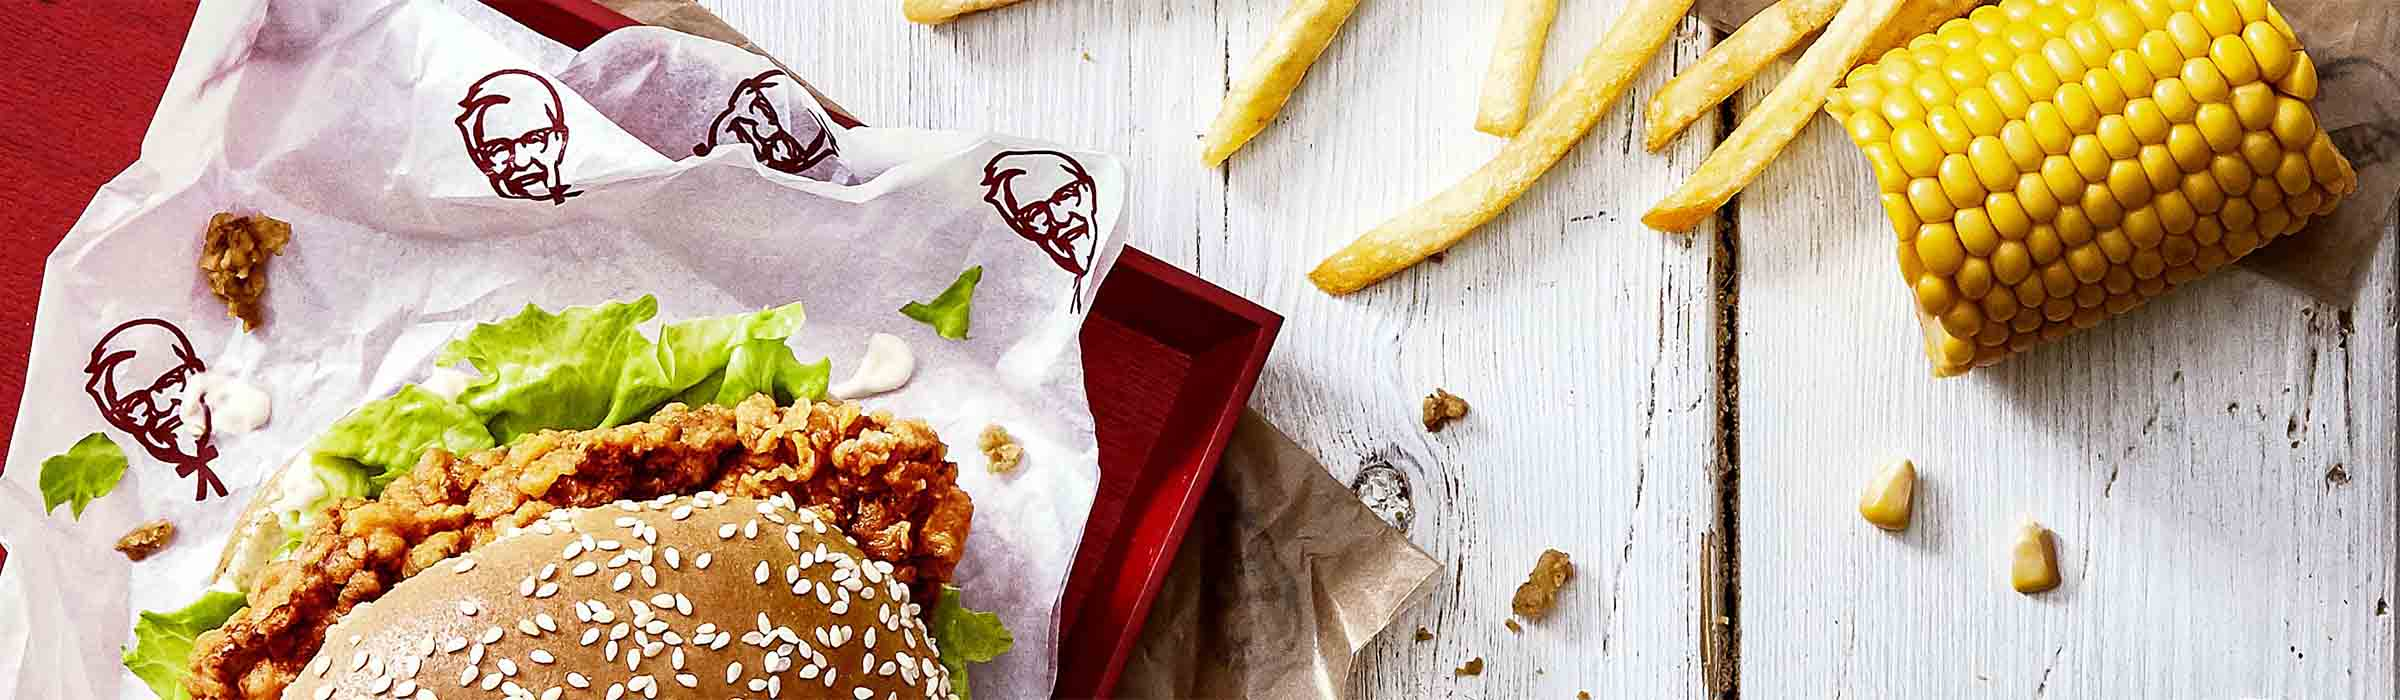 Kfc Delivery And Takeaway Order From A Kfc Near You